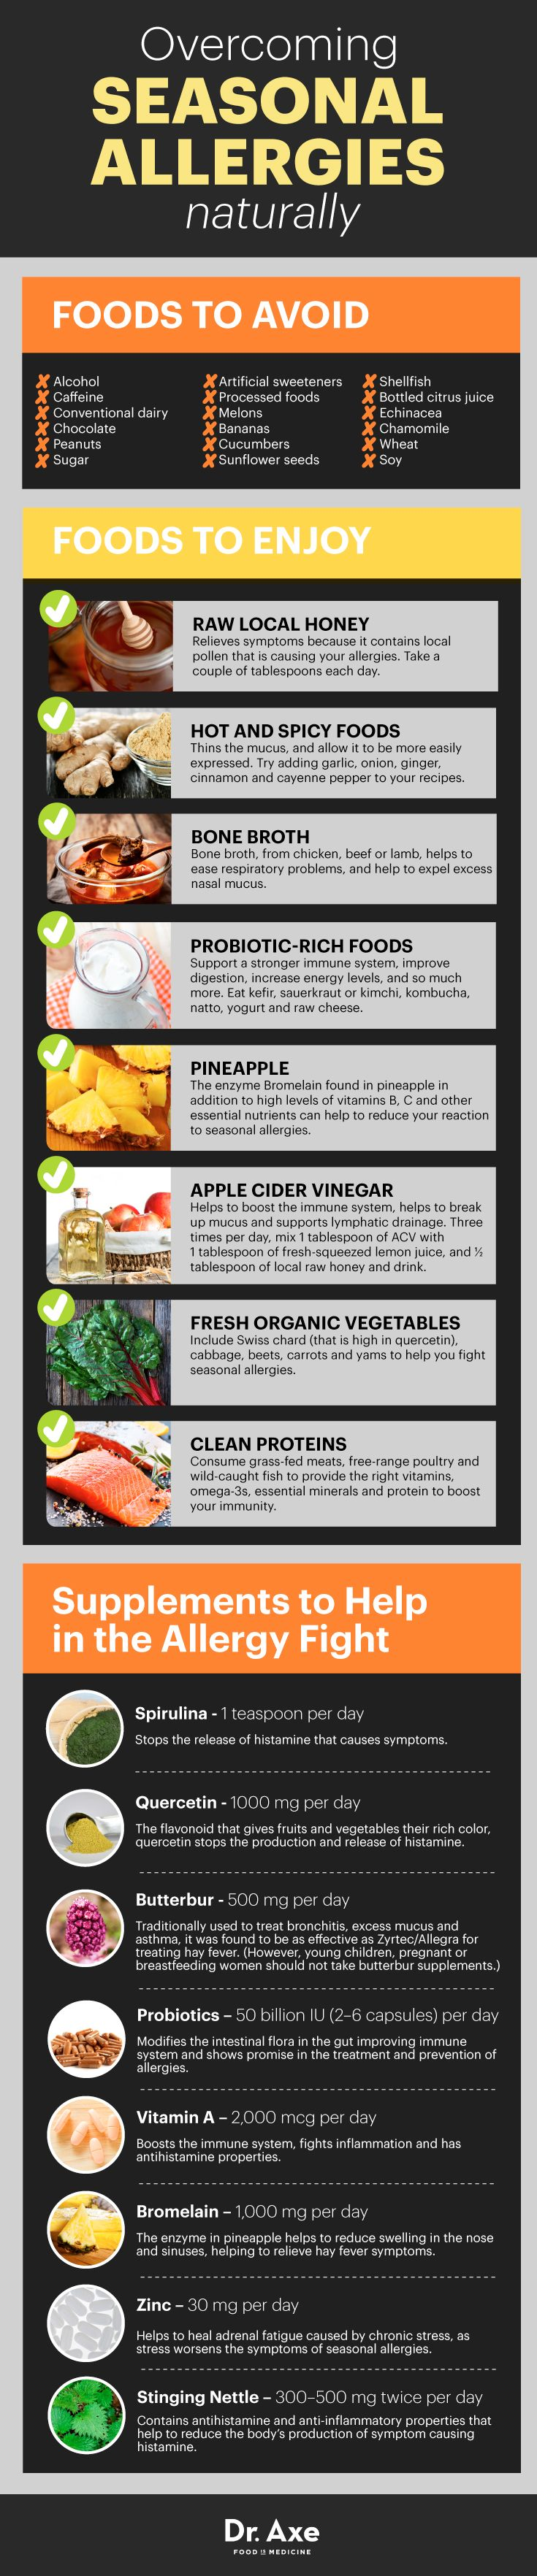 Natural remedies cures for seasonal allergies infographic chart http://www.draxe.com #health #holistic #natural